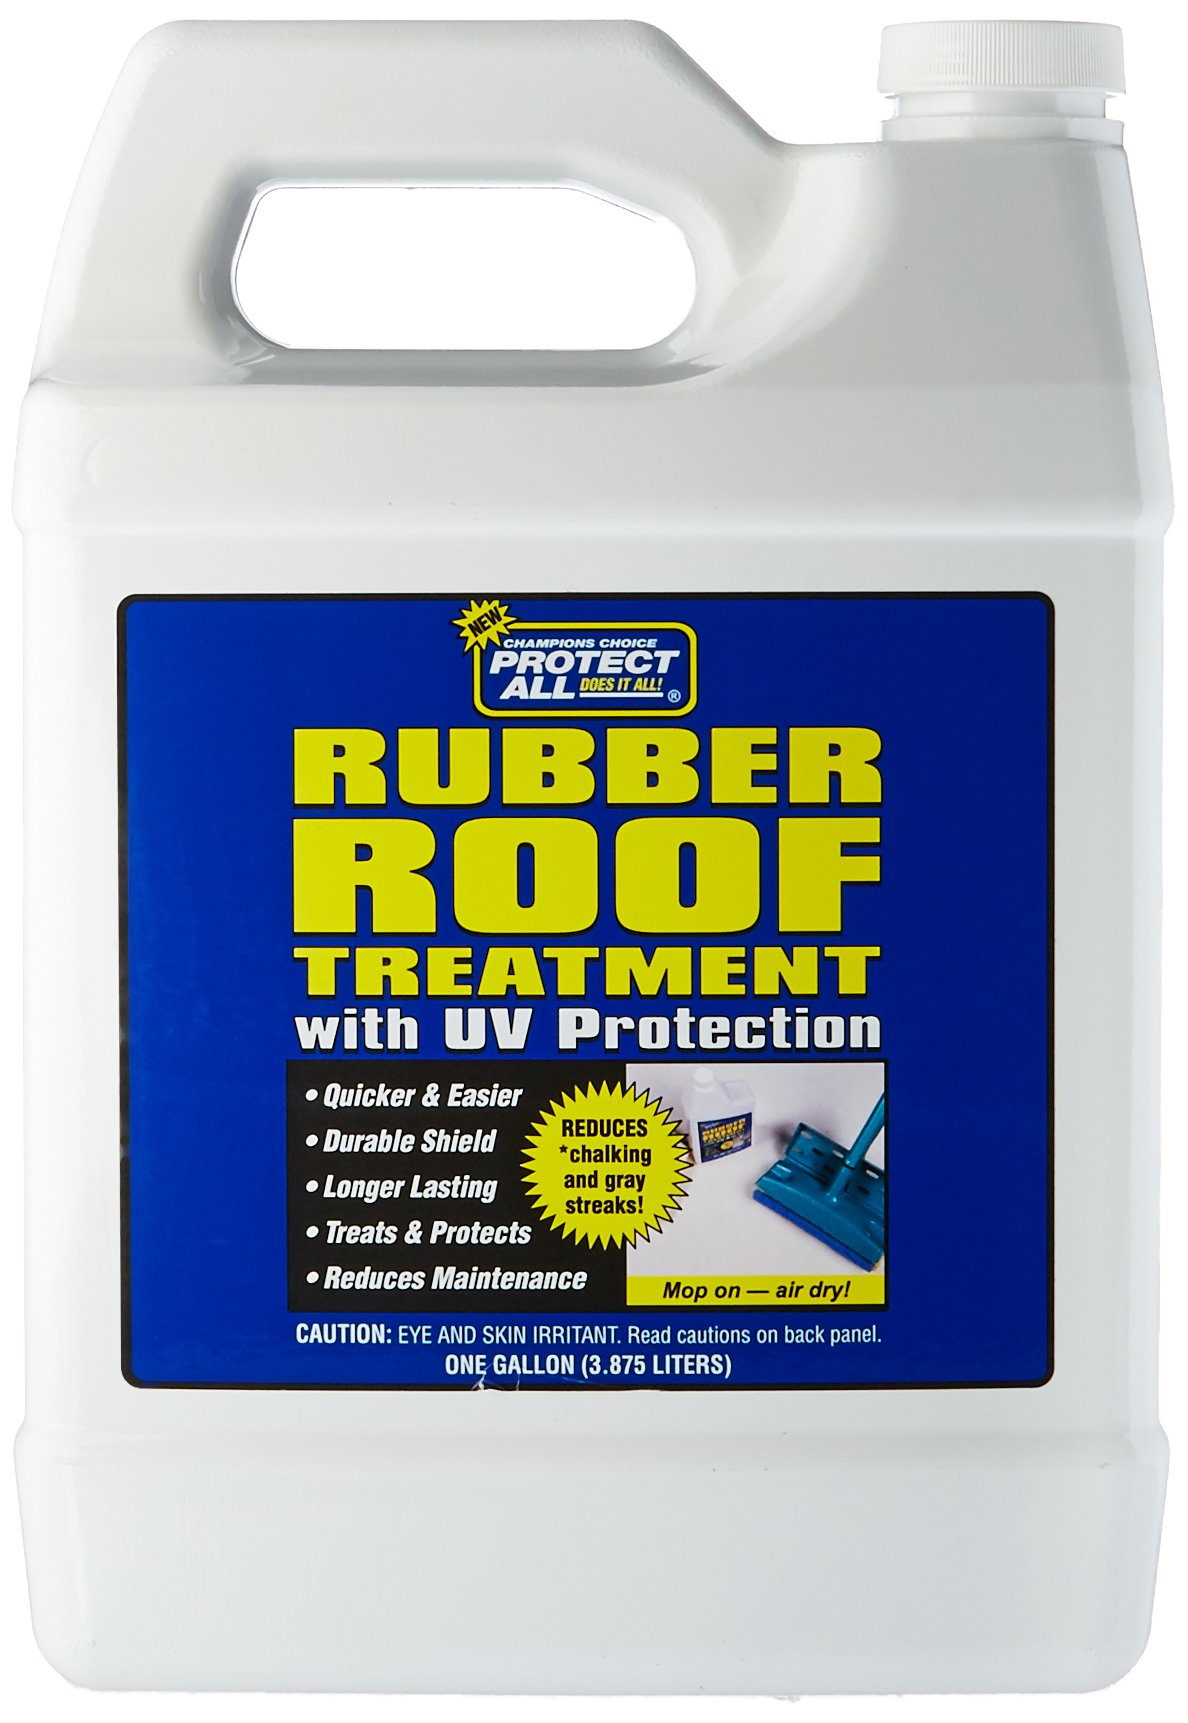 Rubber Roof Treatment anti static protectant